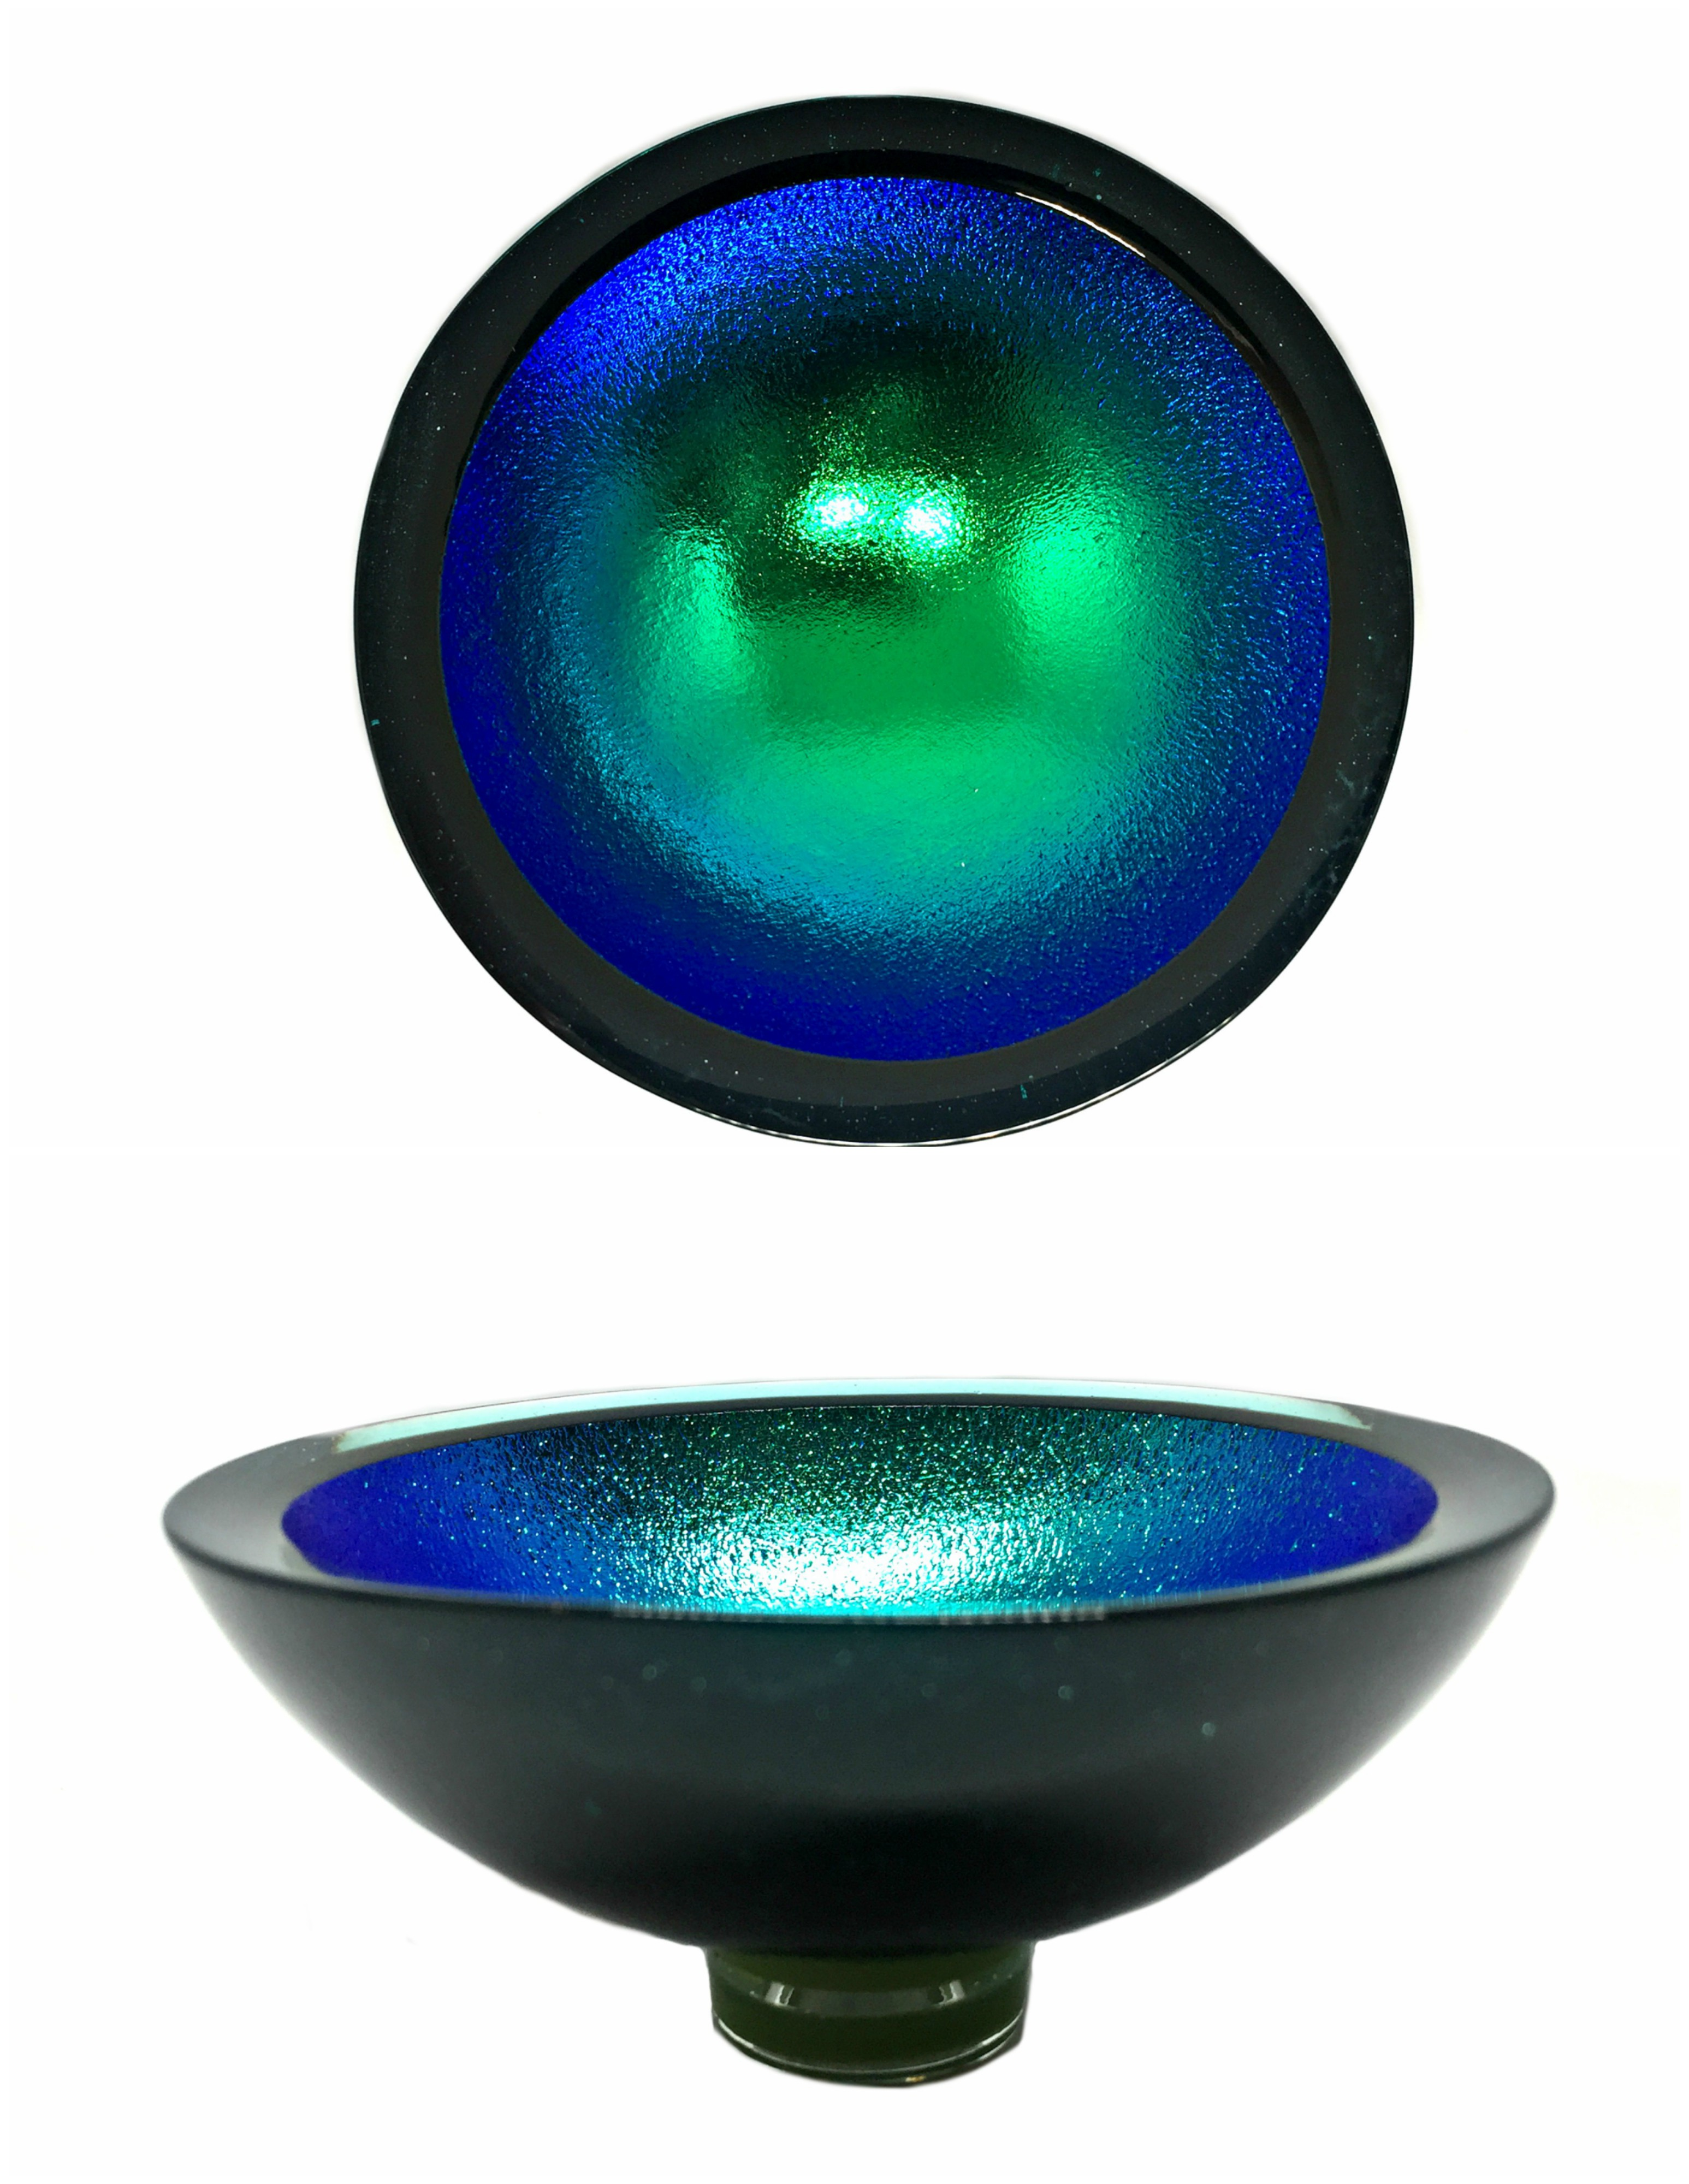 Thing of Beauty 3325 glass bowl by Jo Ludwig | Effusion Art Gallery + Cast Glass Studio, Invermere BC